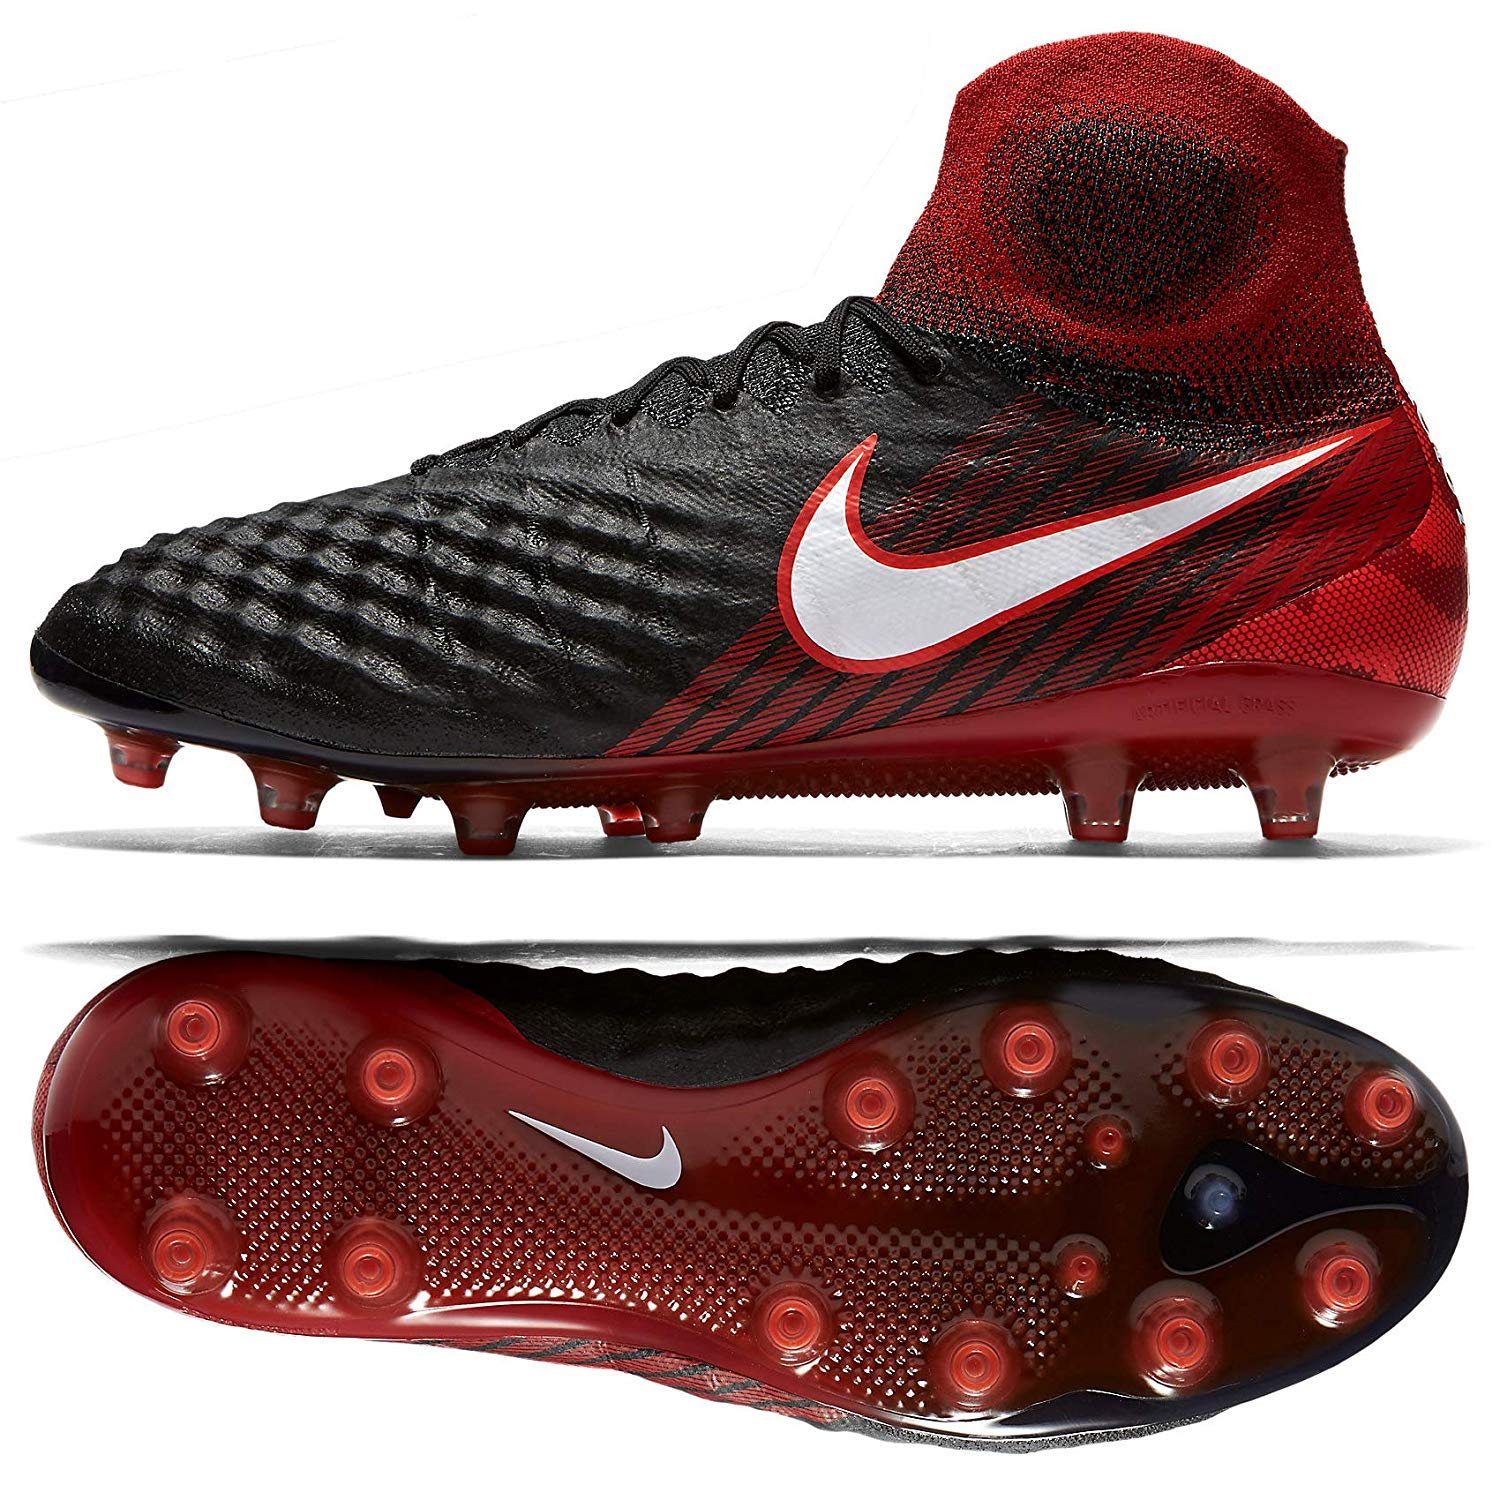 68776340f90e Nike Magista Obra II AG-PRO Men s Soccer Cleats Black Red 844594-061 Sz 8.5